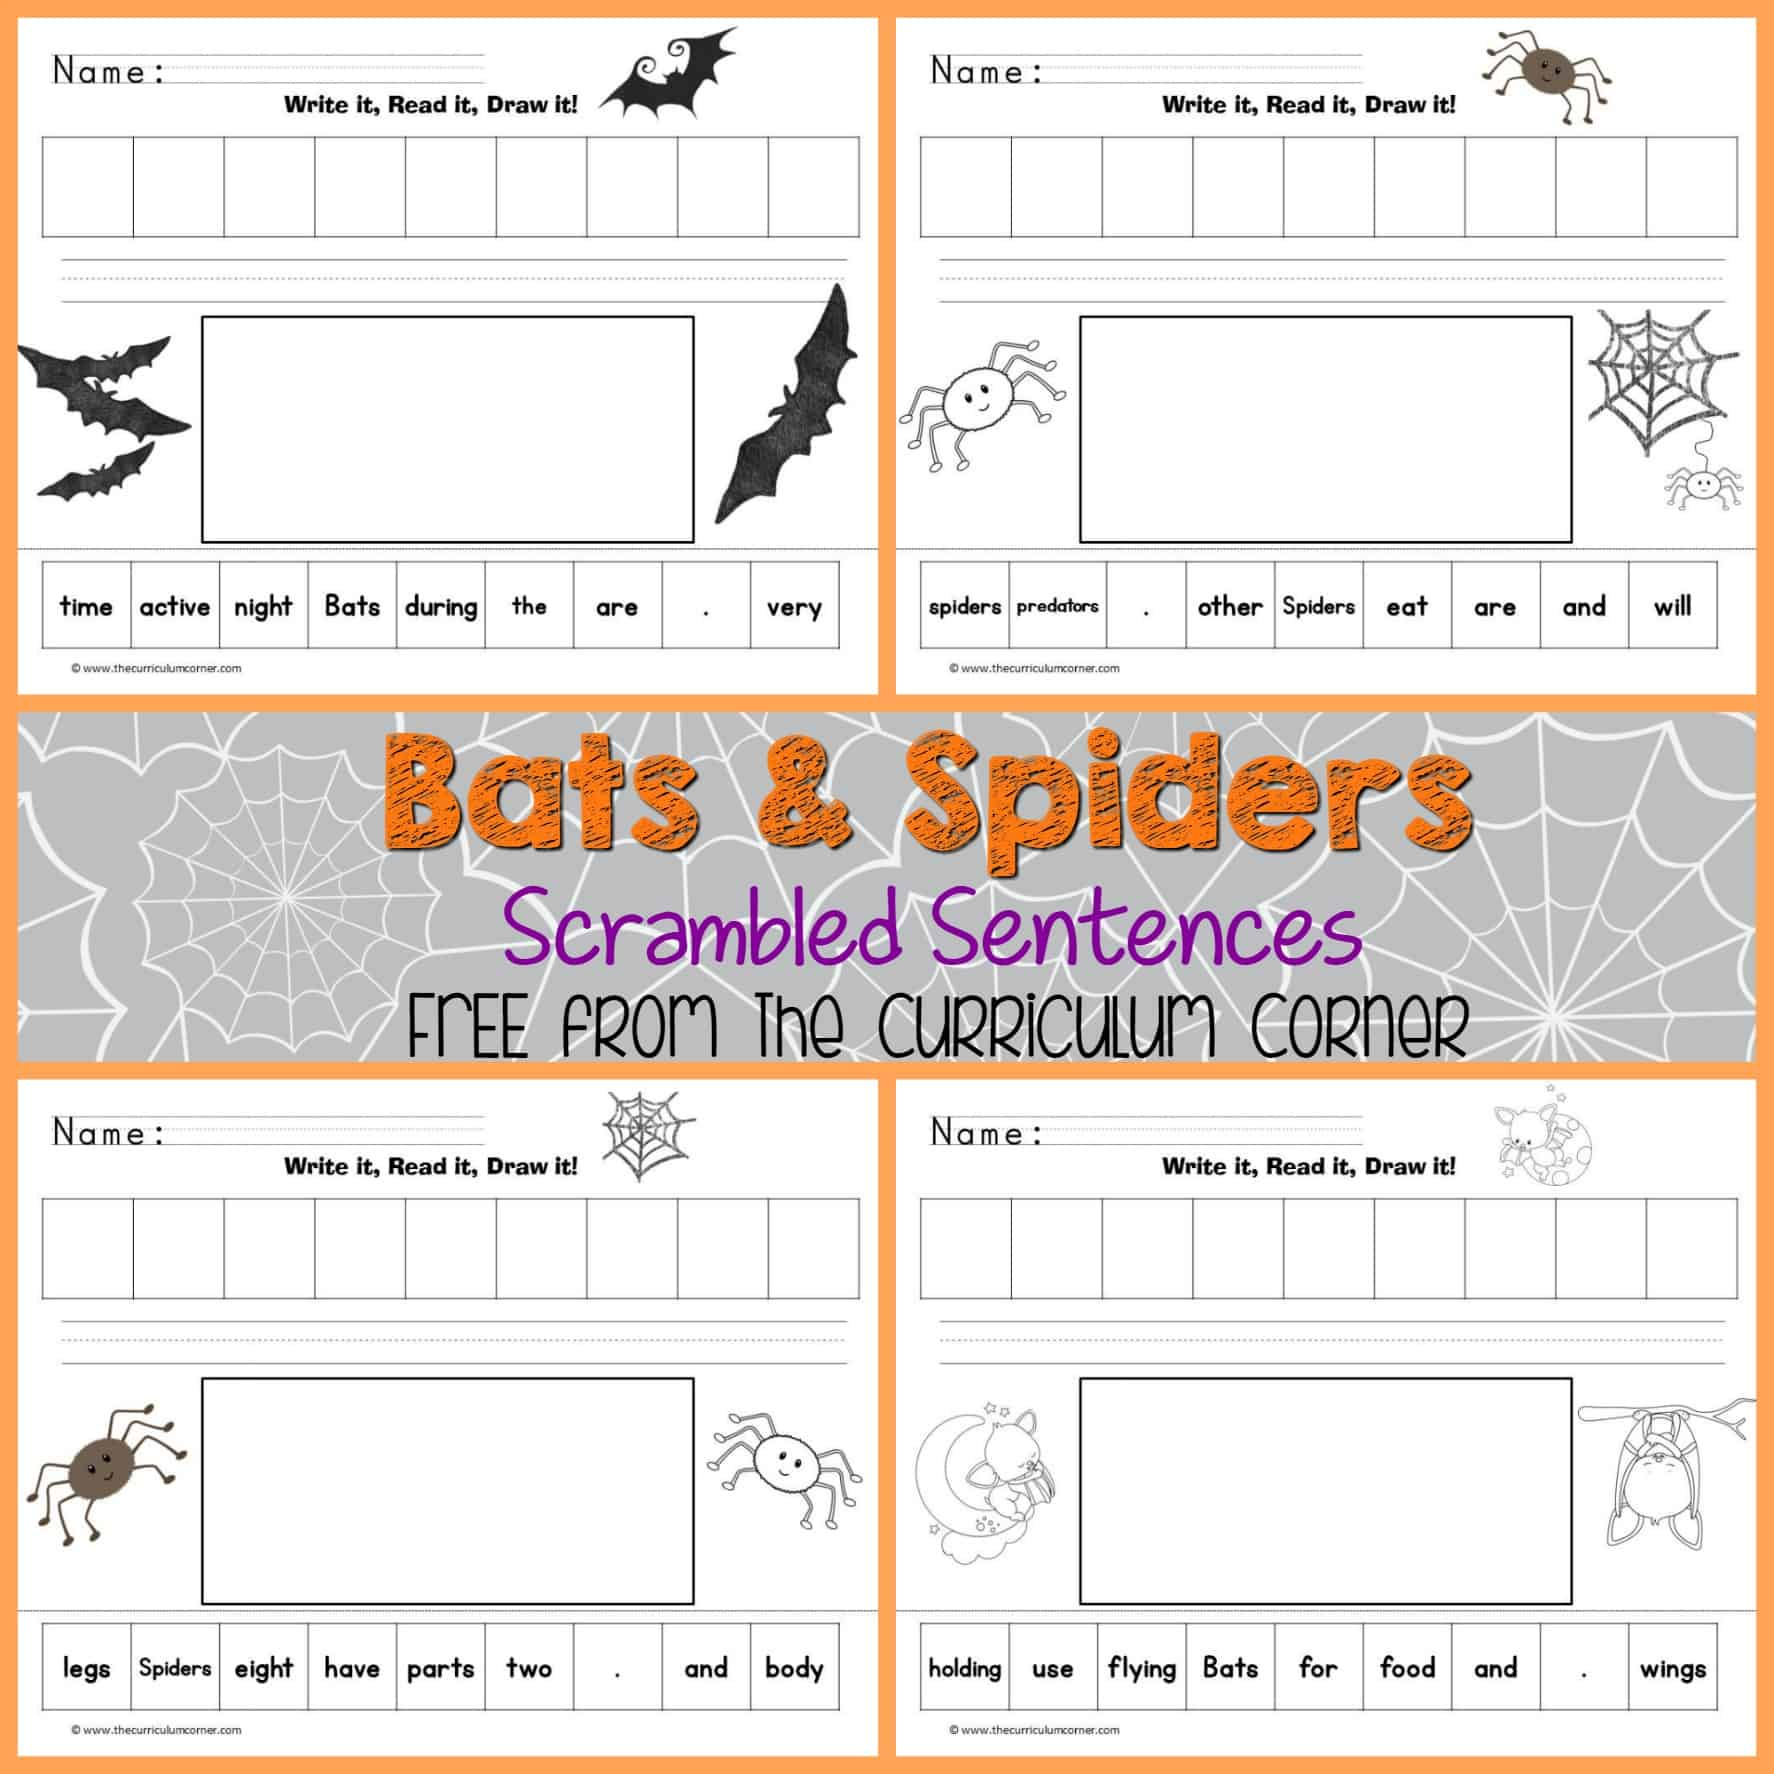 Bats spiders read write draw it the curriculum corner 123 pooptronica